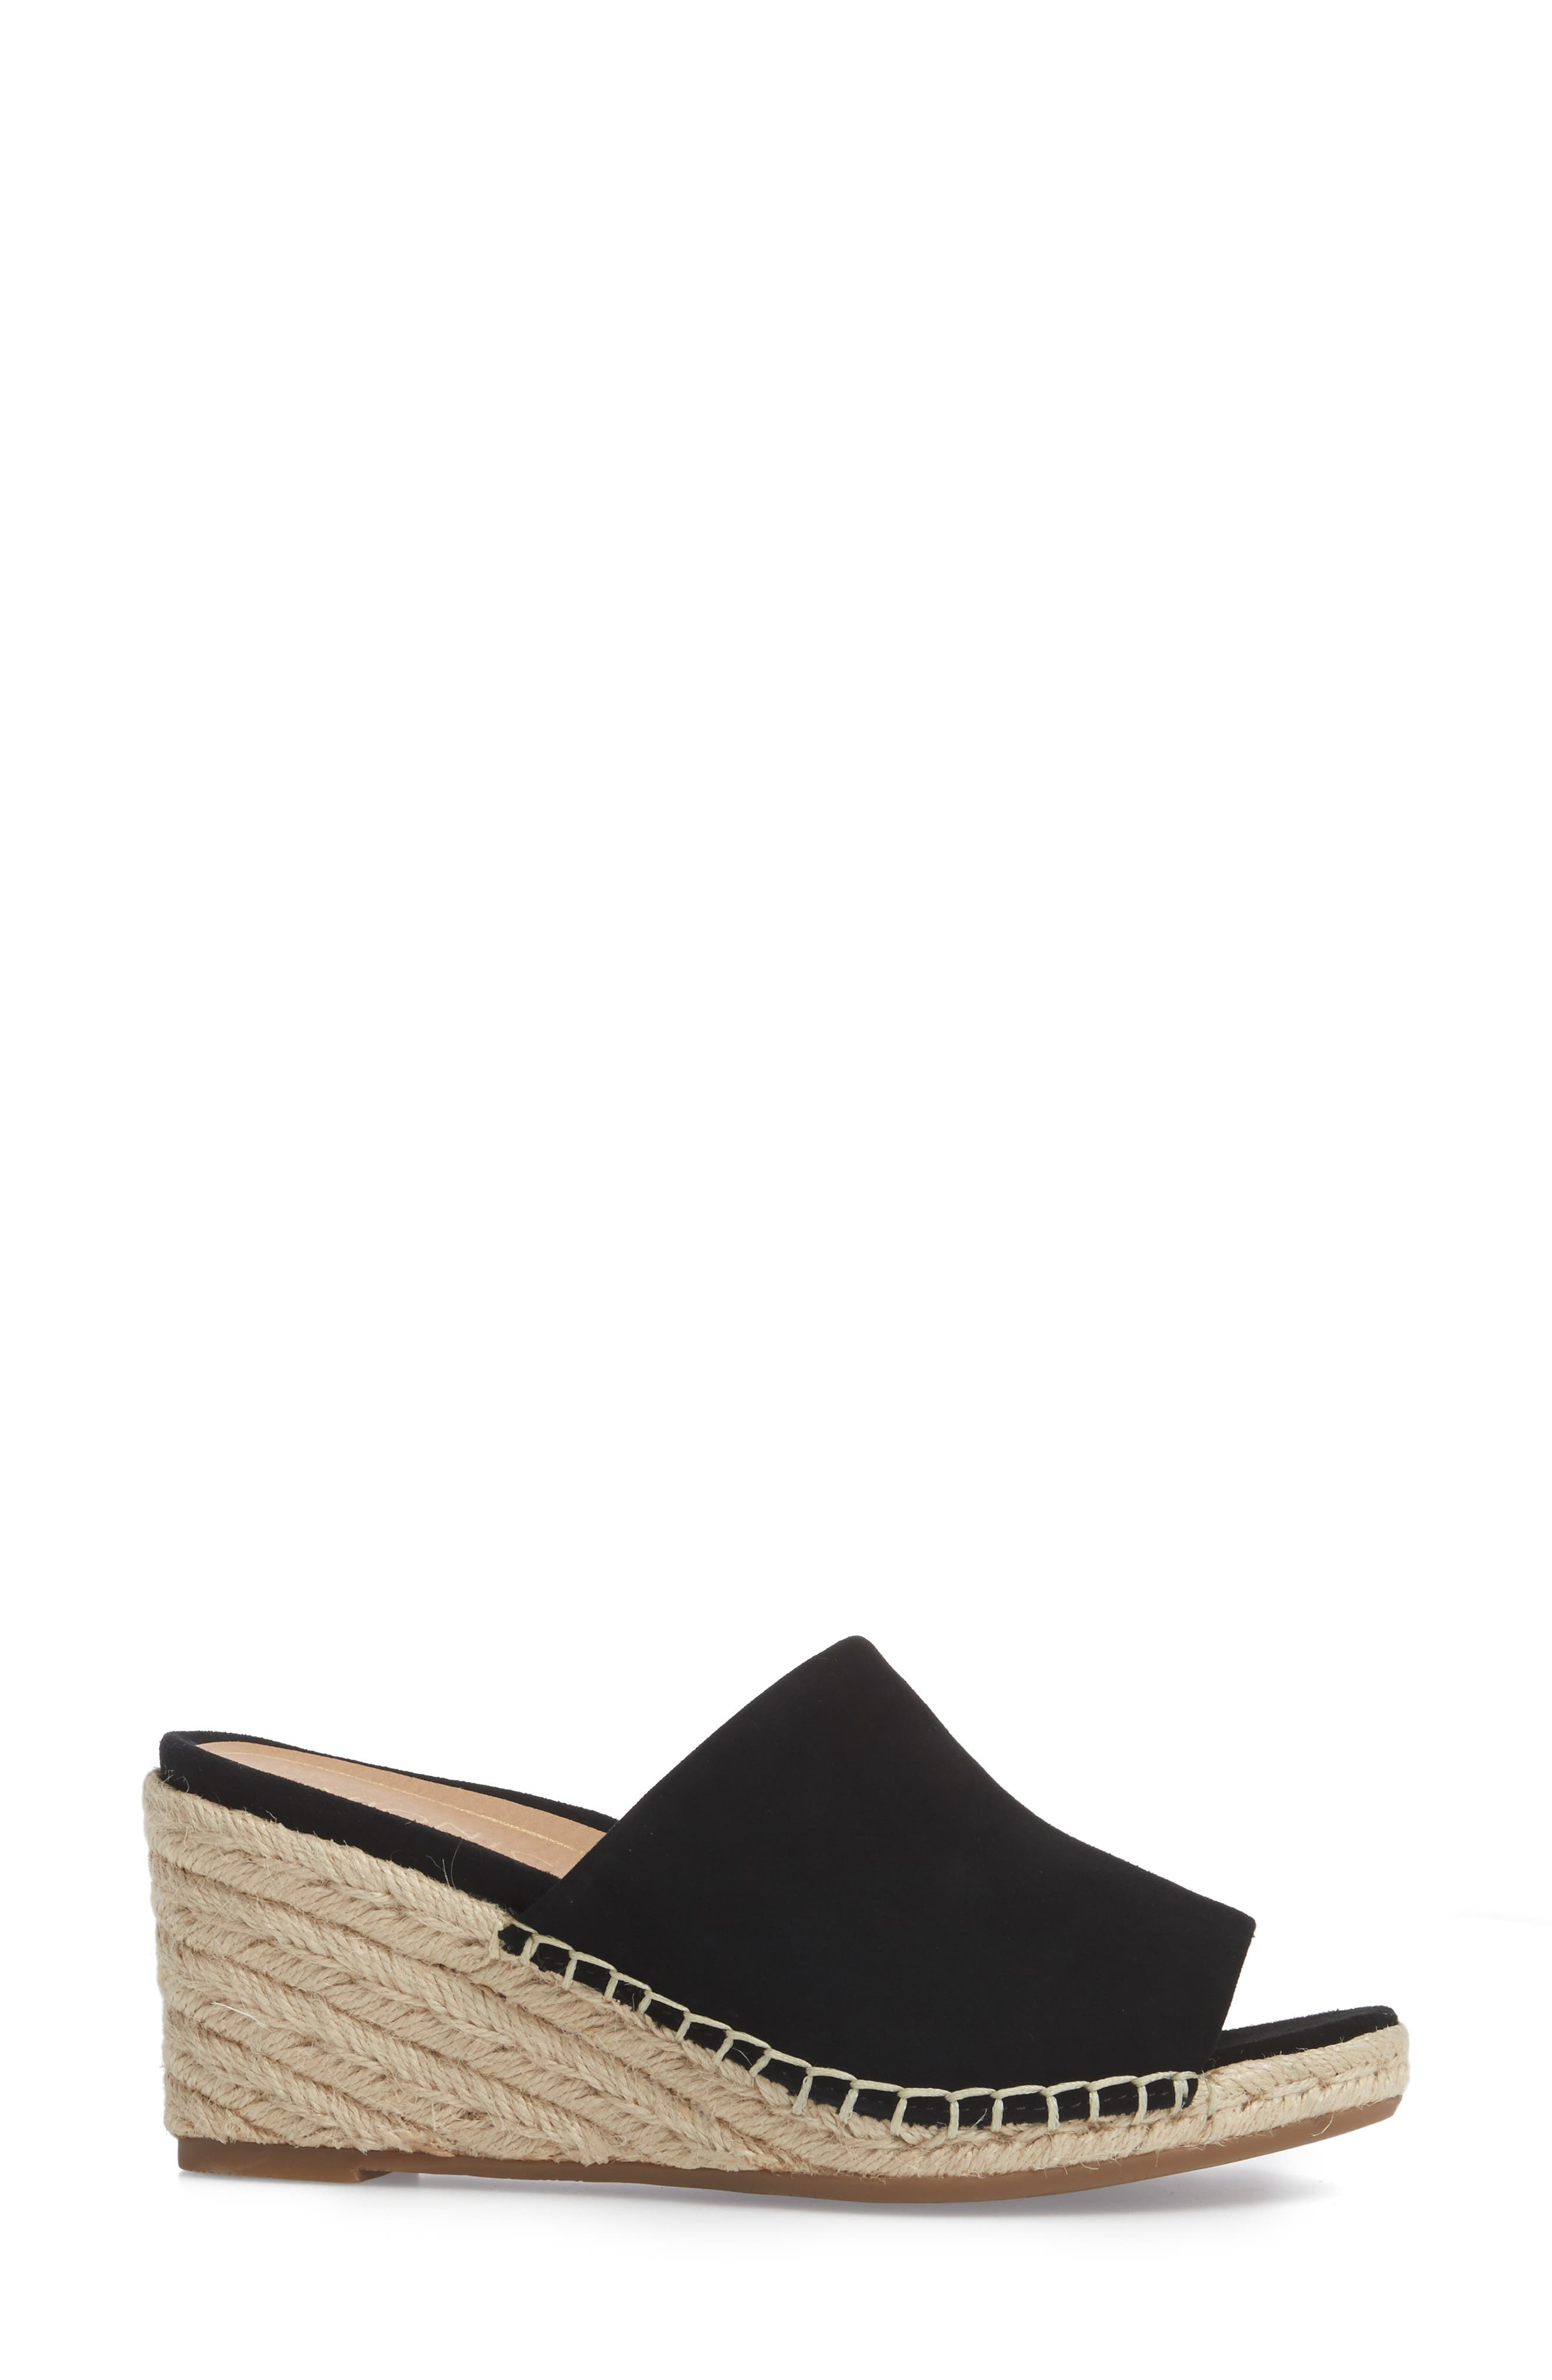 Kadyn Espadrille Wedge Sandal,                             Alternate thumbnail 3, color,                             BLACK SUEDE